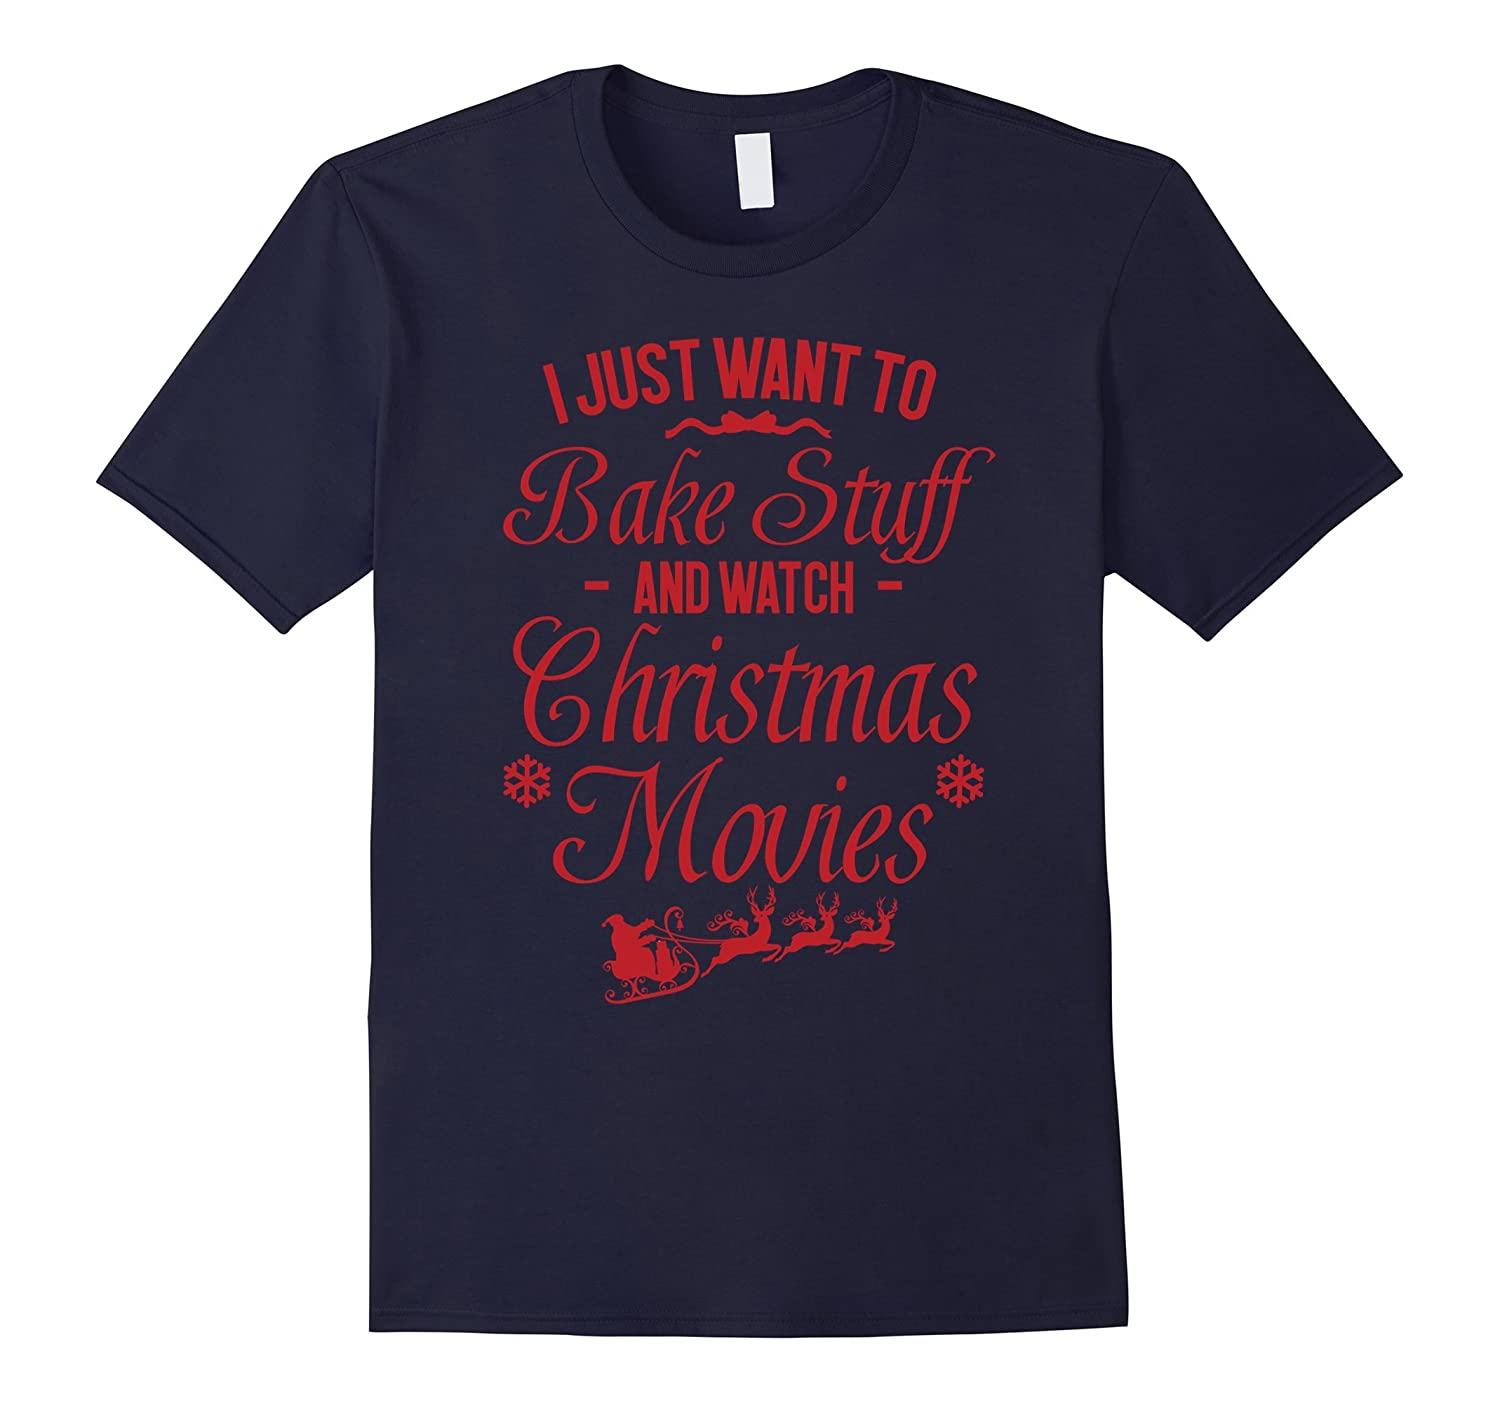 I Just Want To Bake Stuff and Watch Christmas Movies TShirt-TD